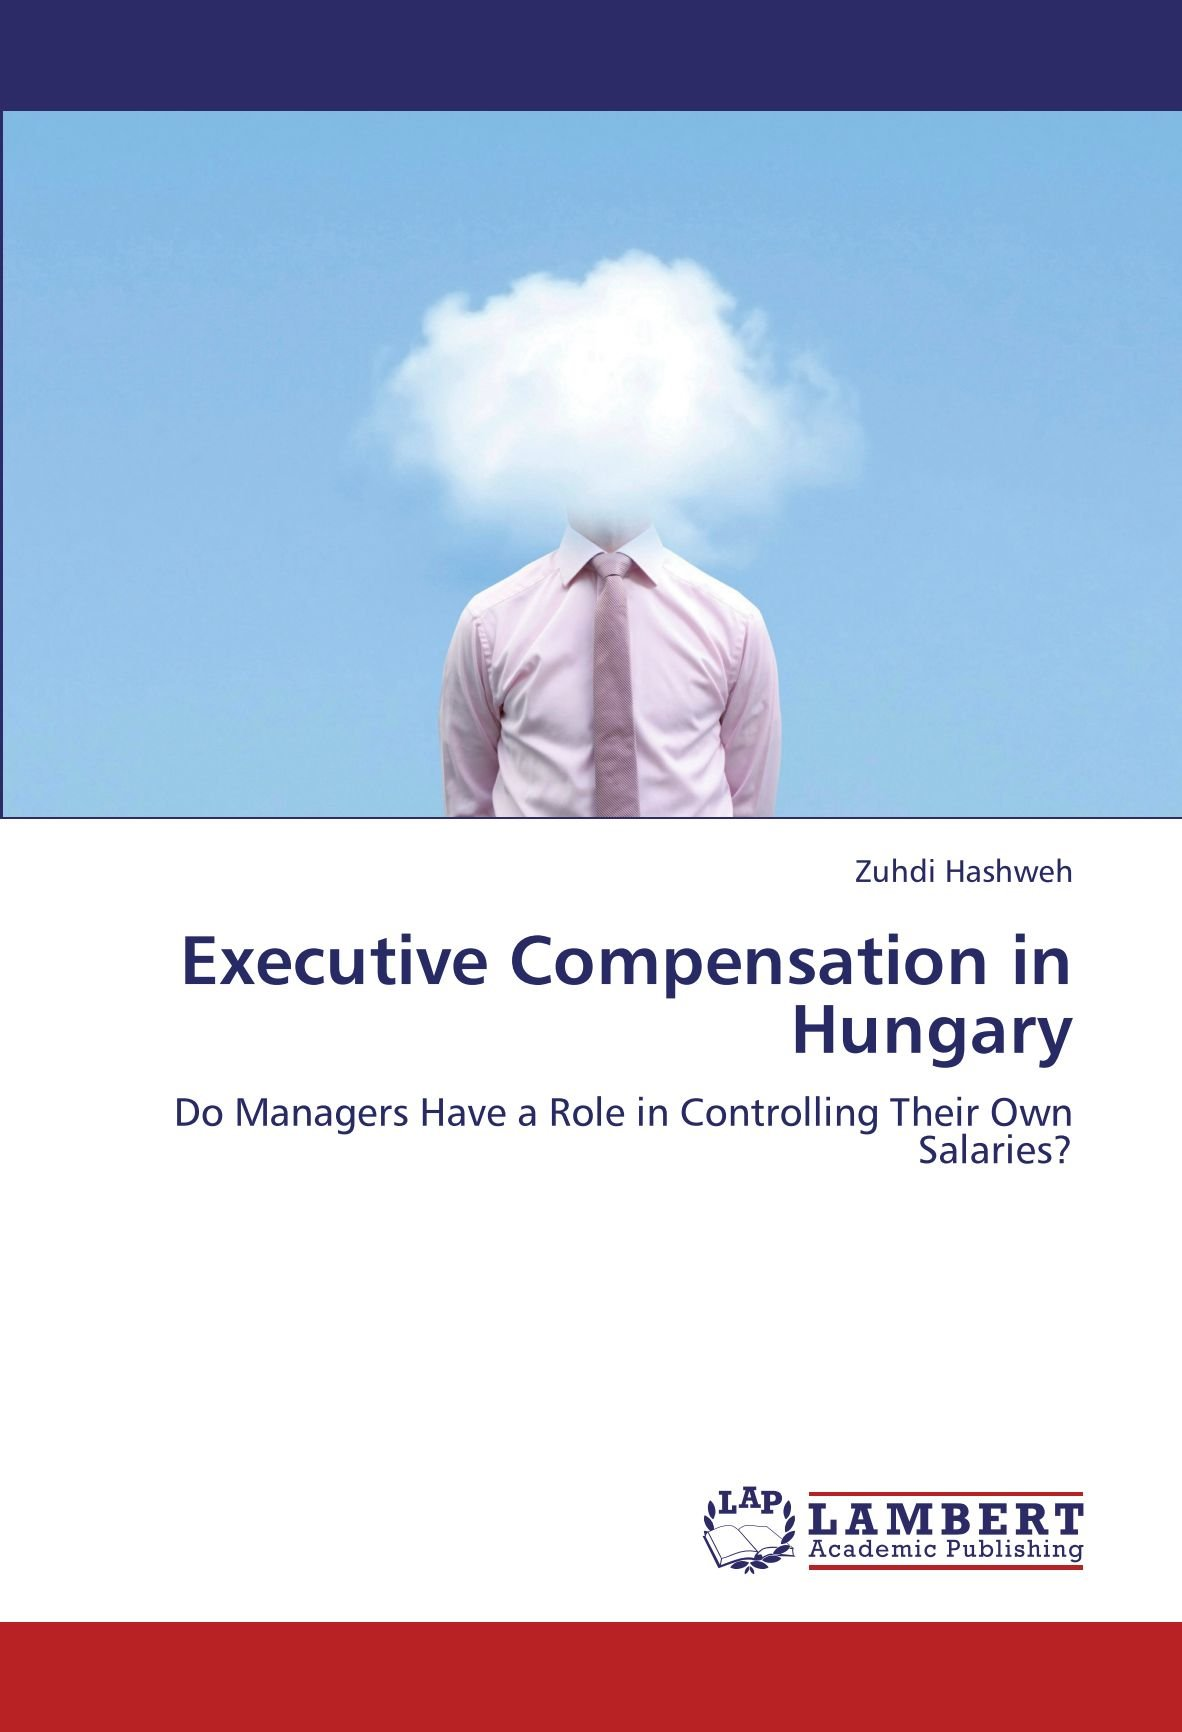 Executive Compensation in Hungary: Do Managers Have a Role